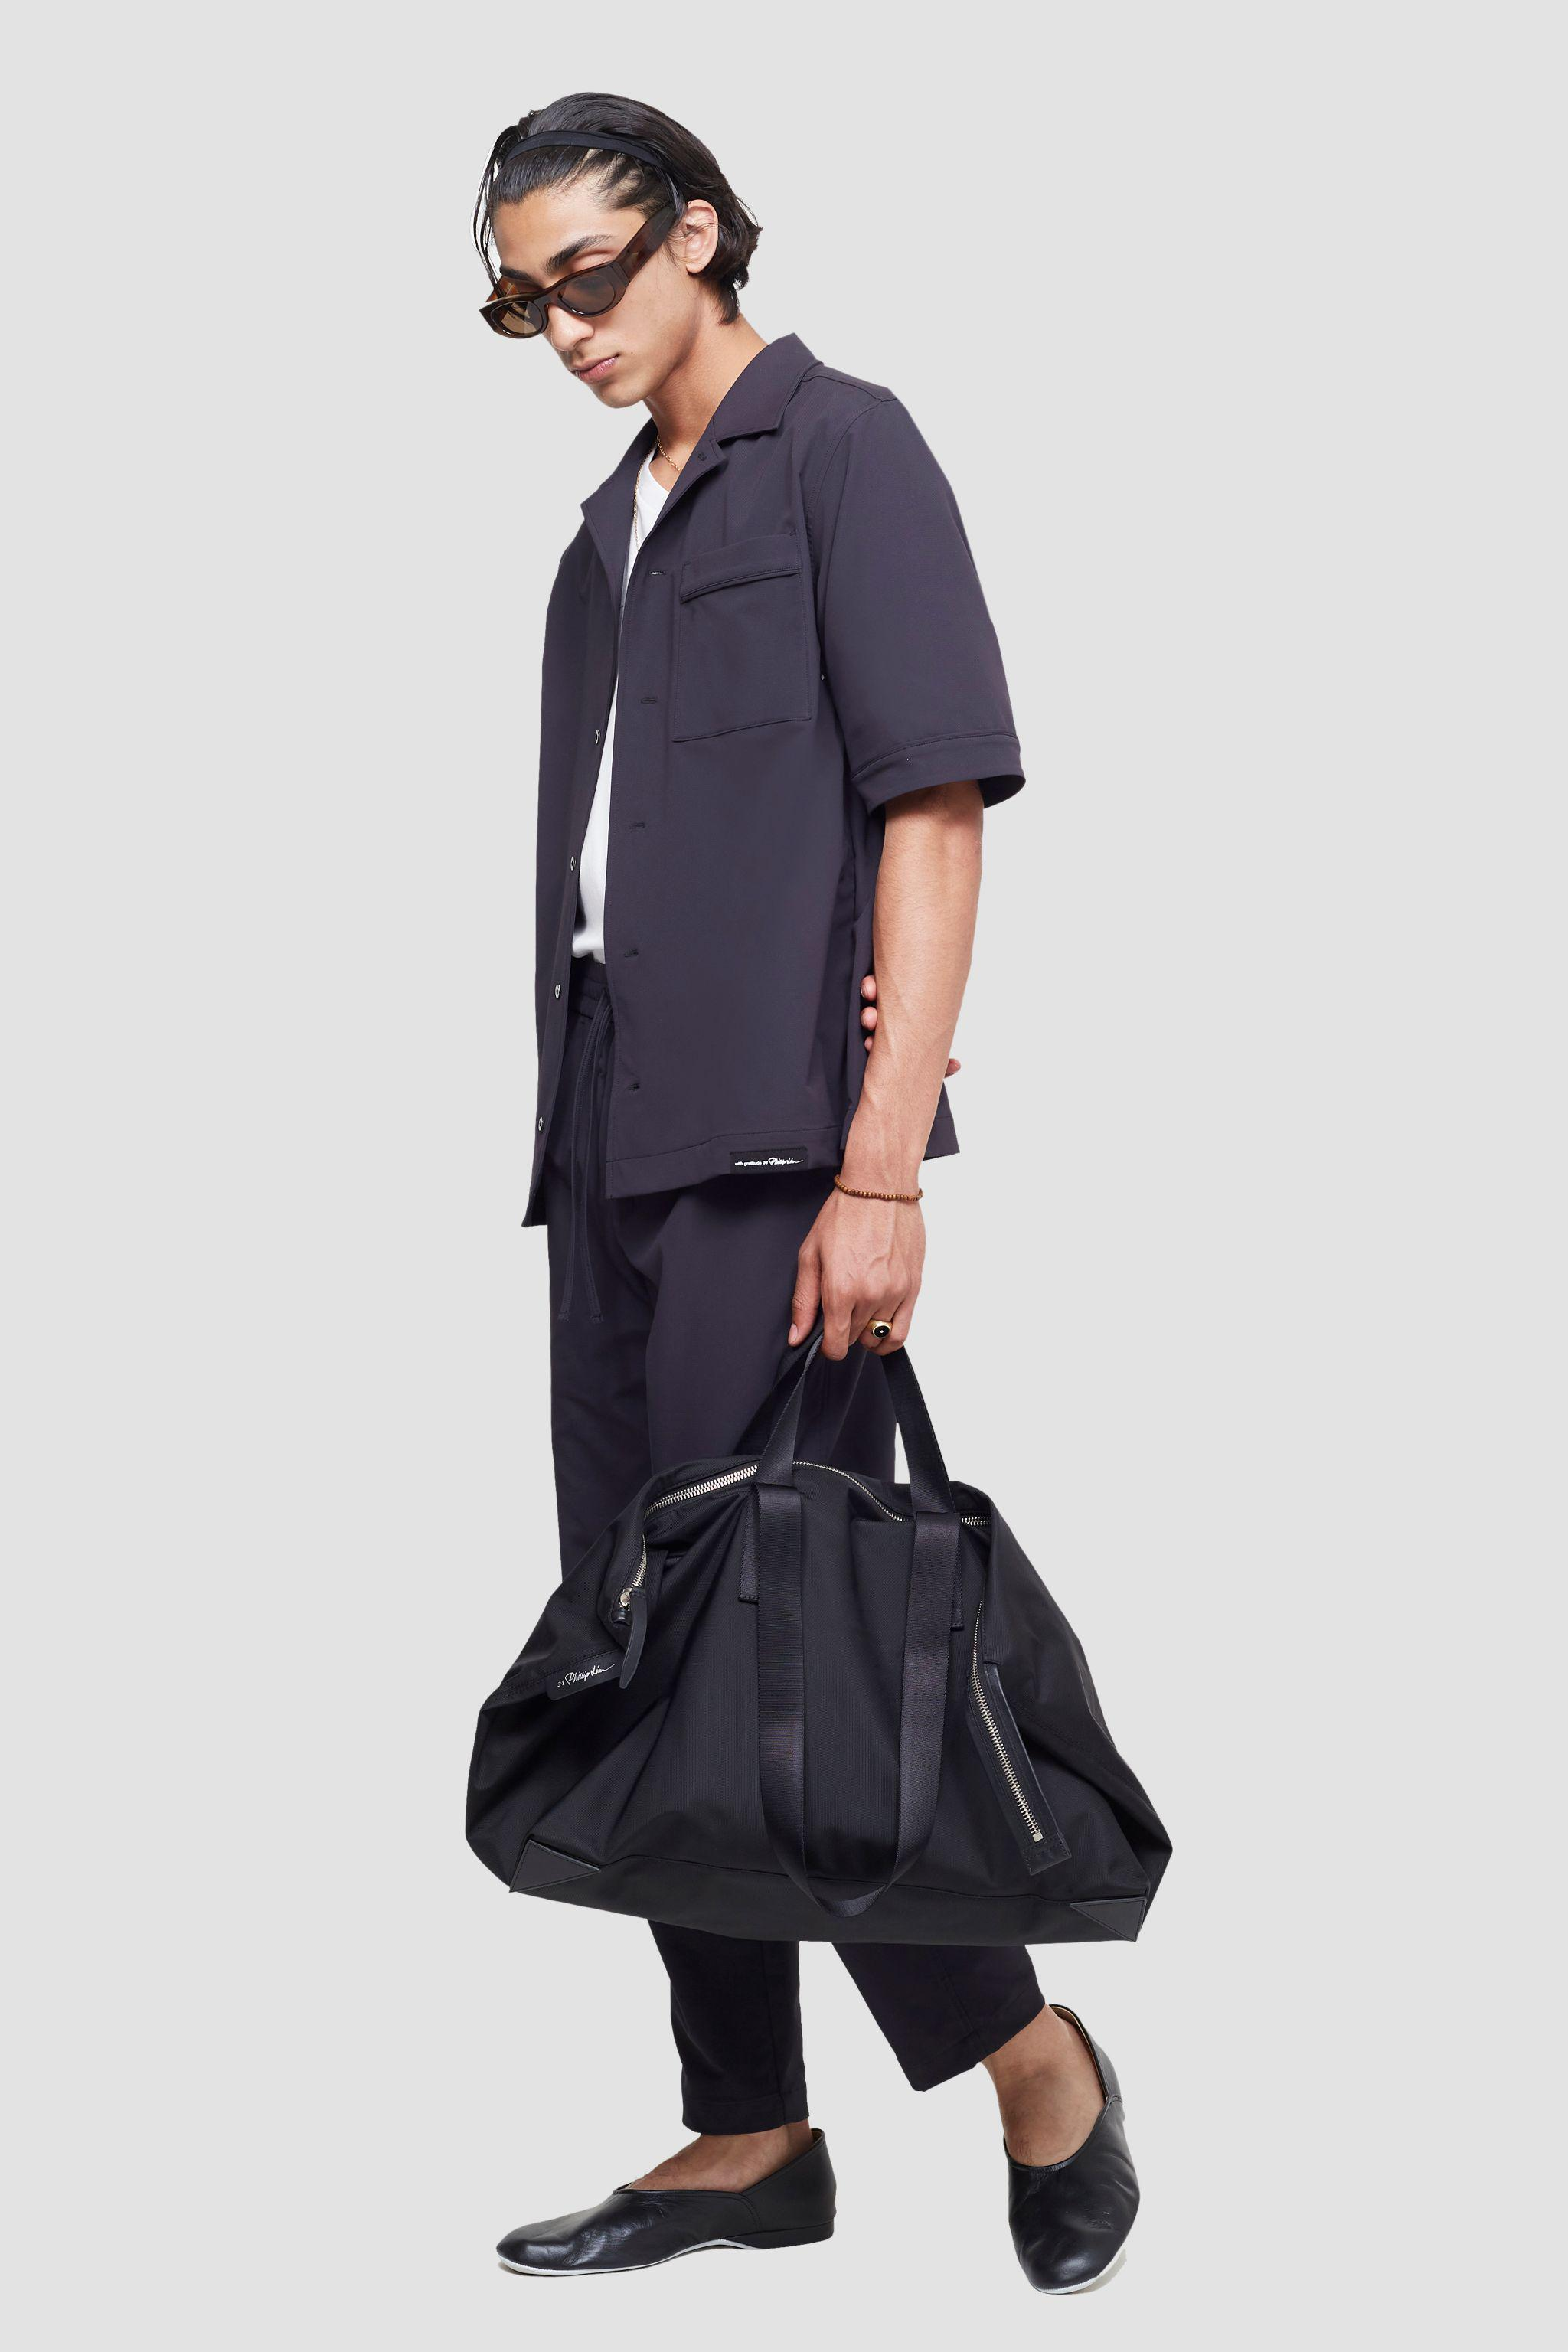 The Deconstructed Duffle Bag 5